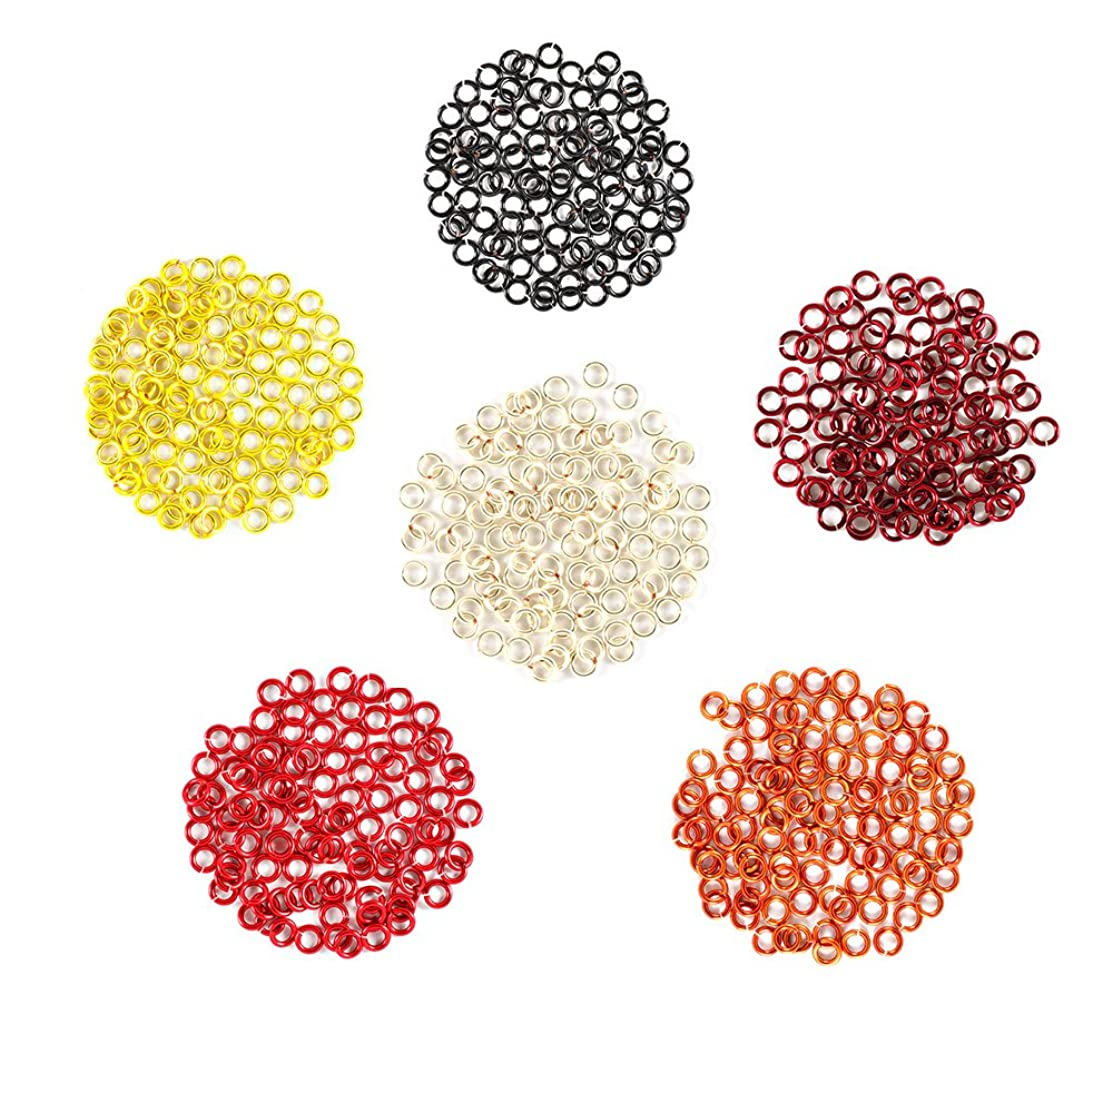 Fire and Sun - Enameled Copper Jump Rings – 18 Gauge – 5.5mm ID - 600 Rings - Black, Burgundy, Orange, Red, Silver, Yellow